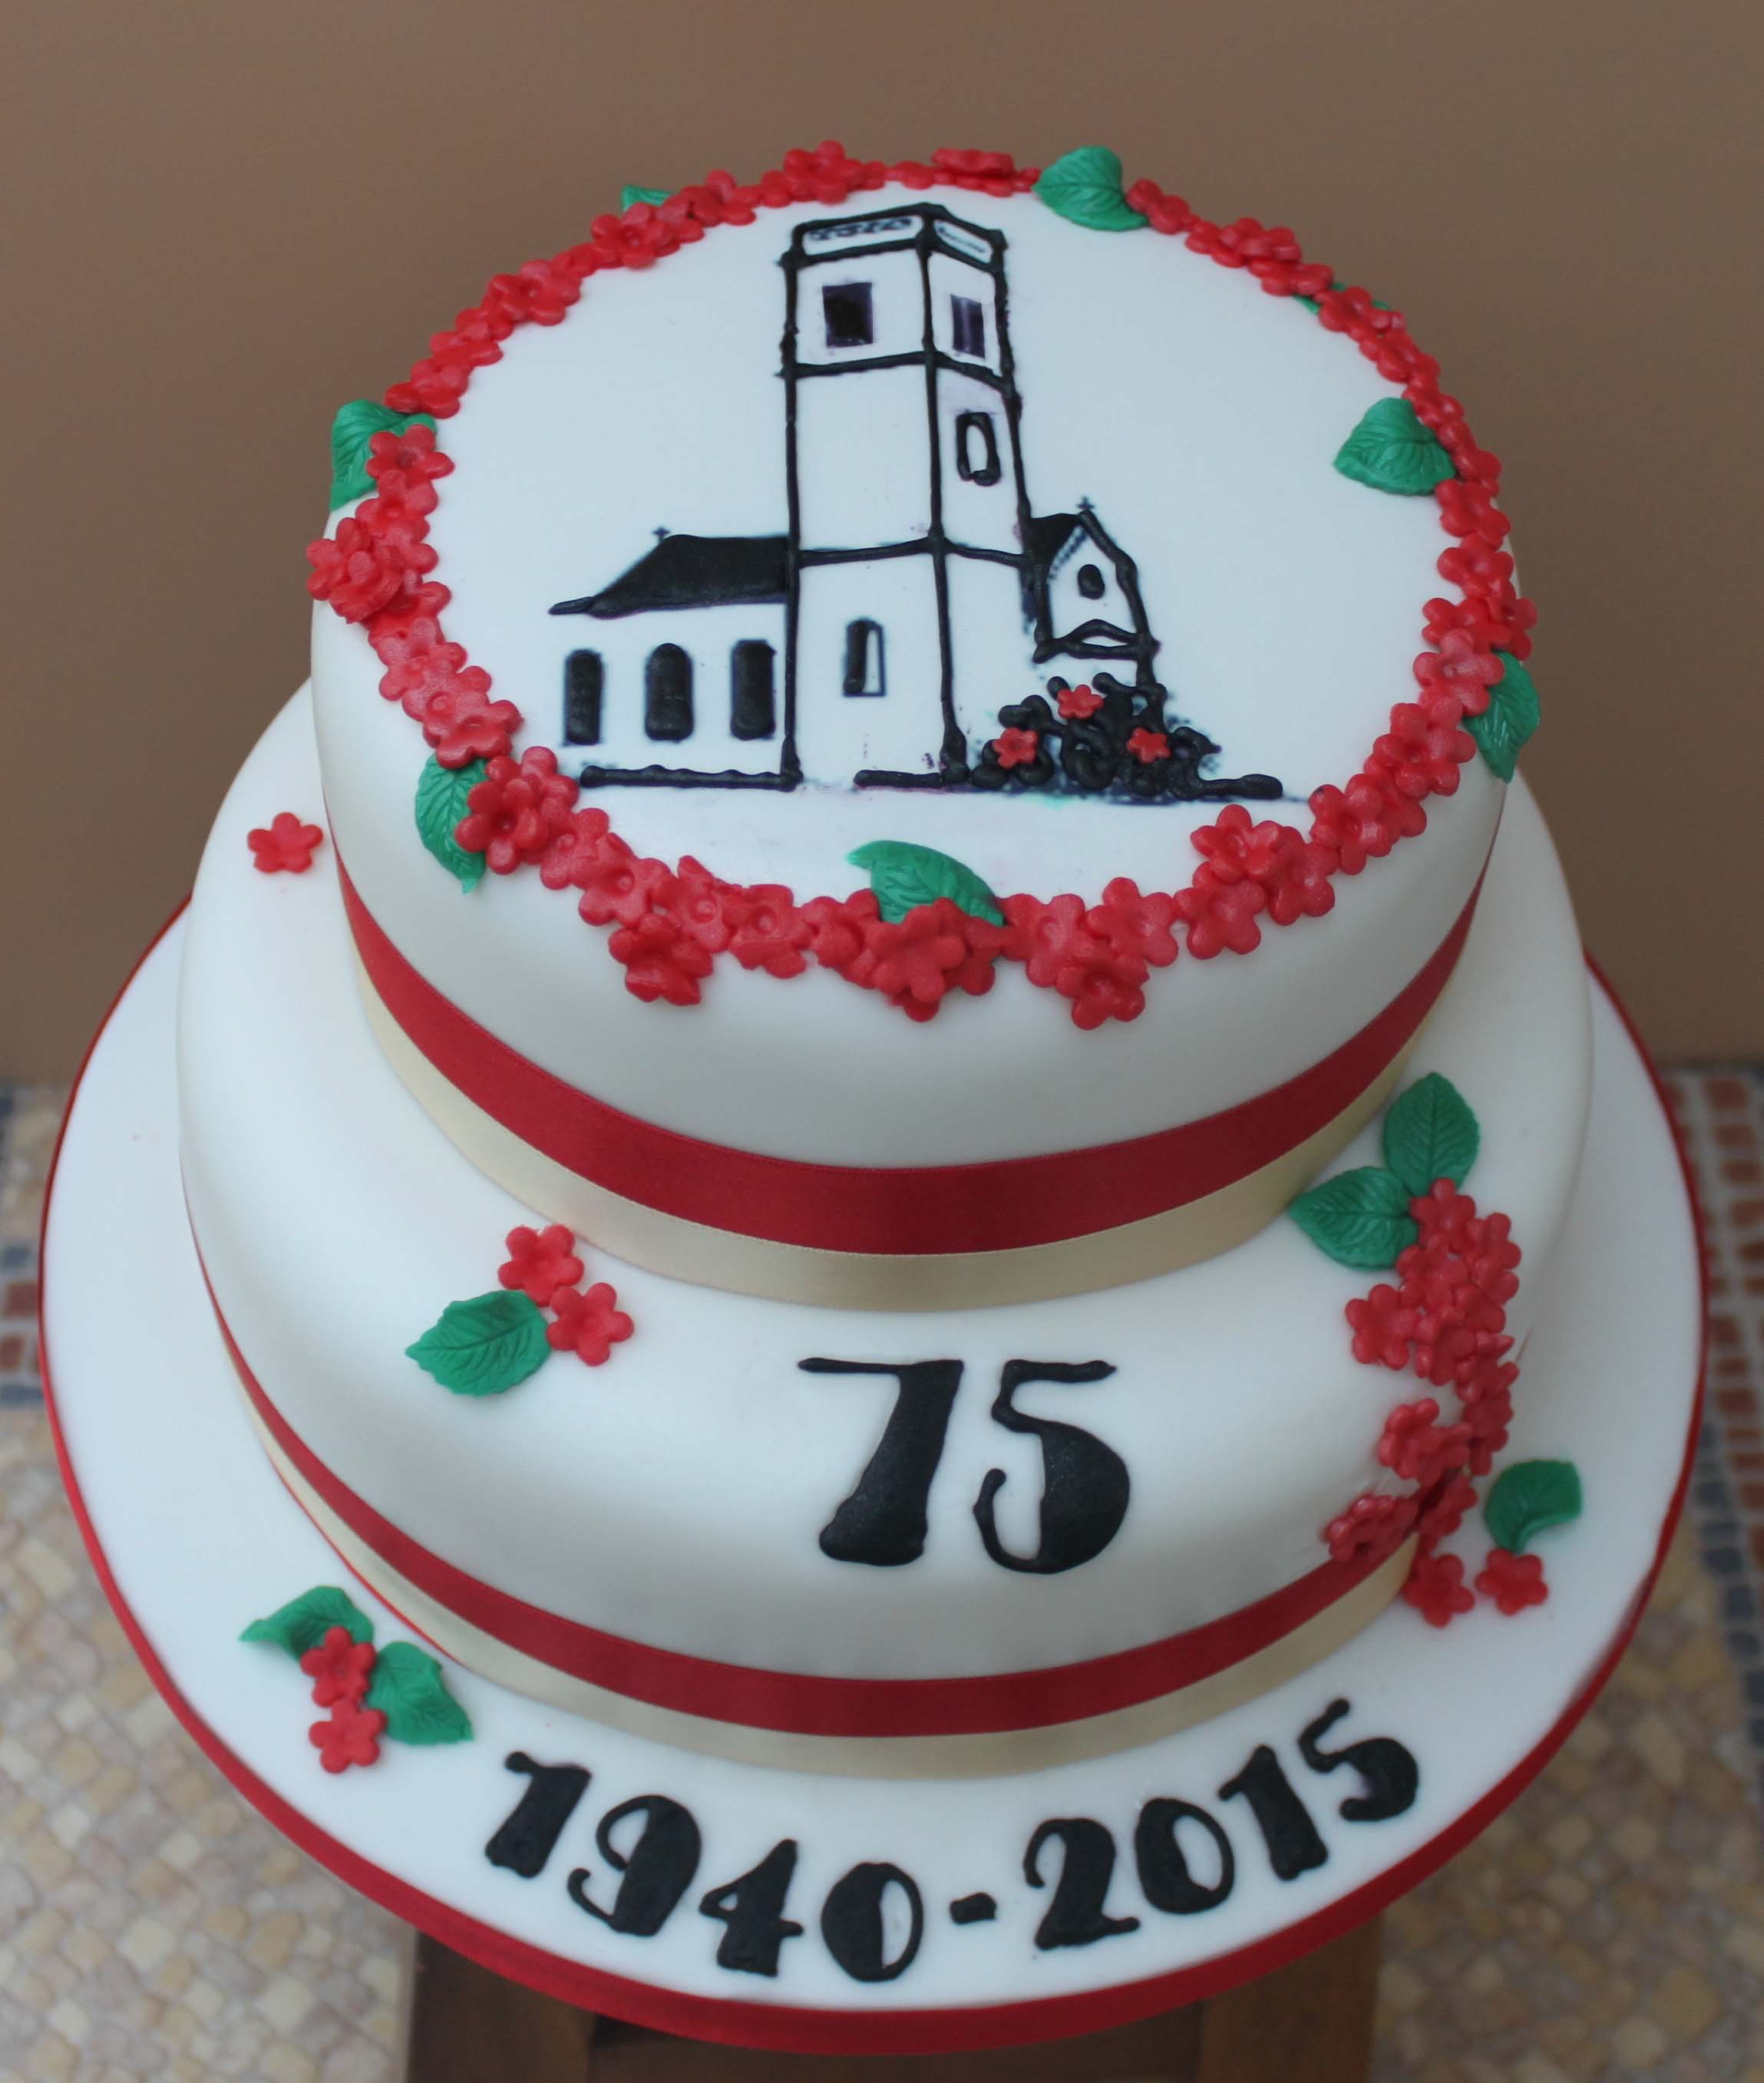 All Hallows Twickenham 75th anniversary cake